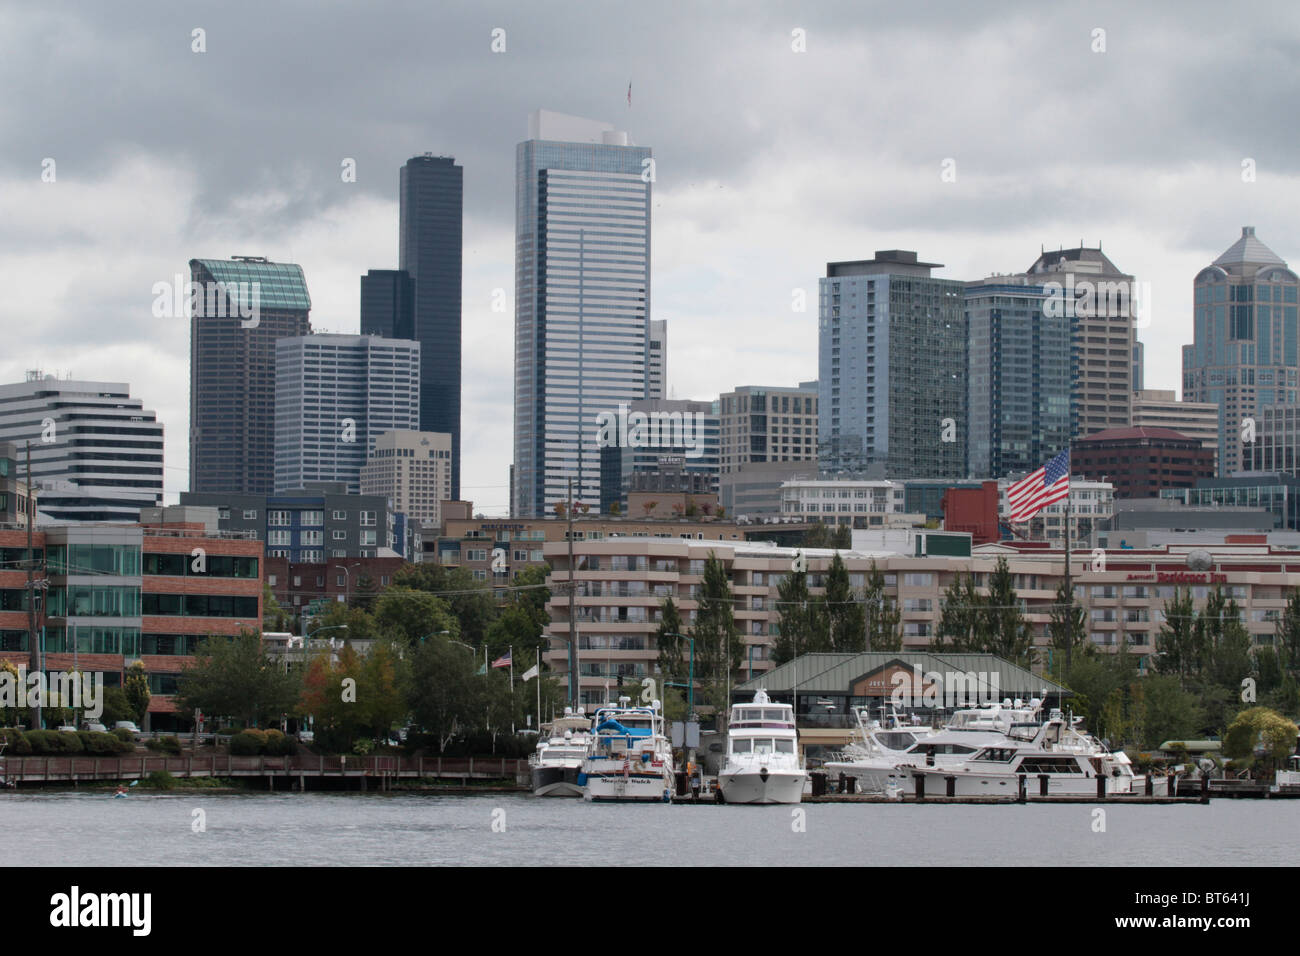 cloudy Seattle skyline from South Lake Union with boats docks and an American flag in view - Stock Image